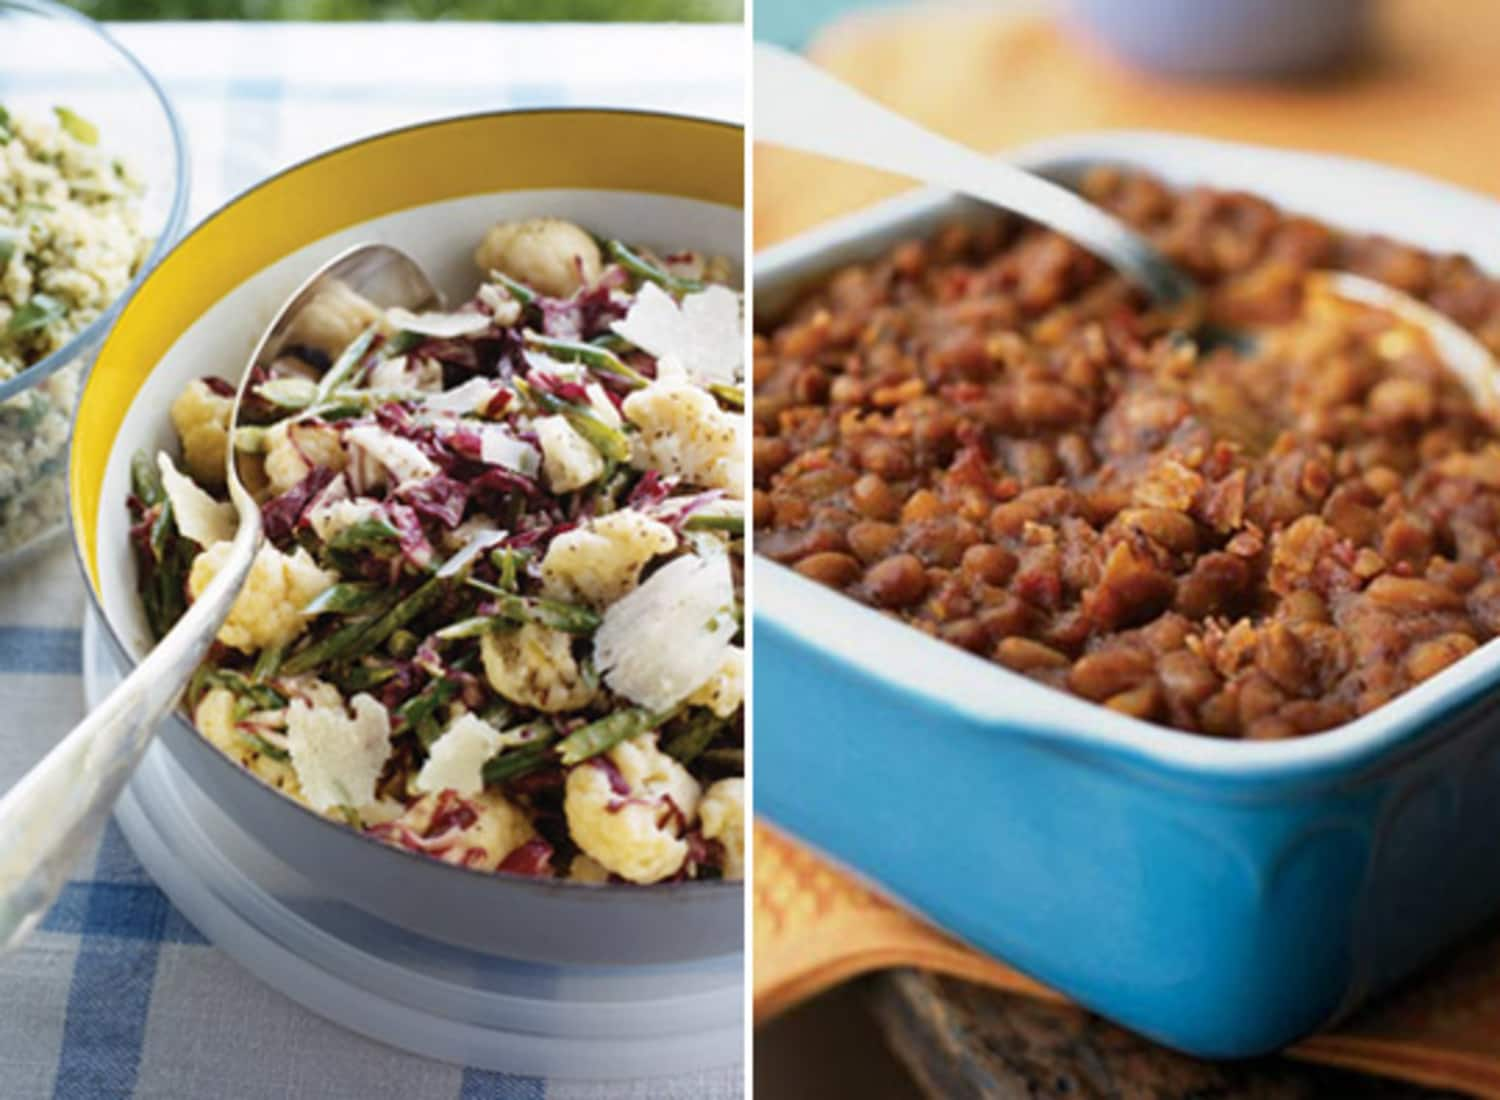 Radicchio Slaw & Tater Fries: 10 Best Barbecue Side Dishes